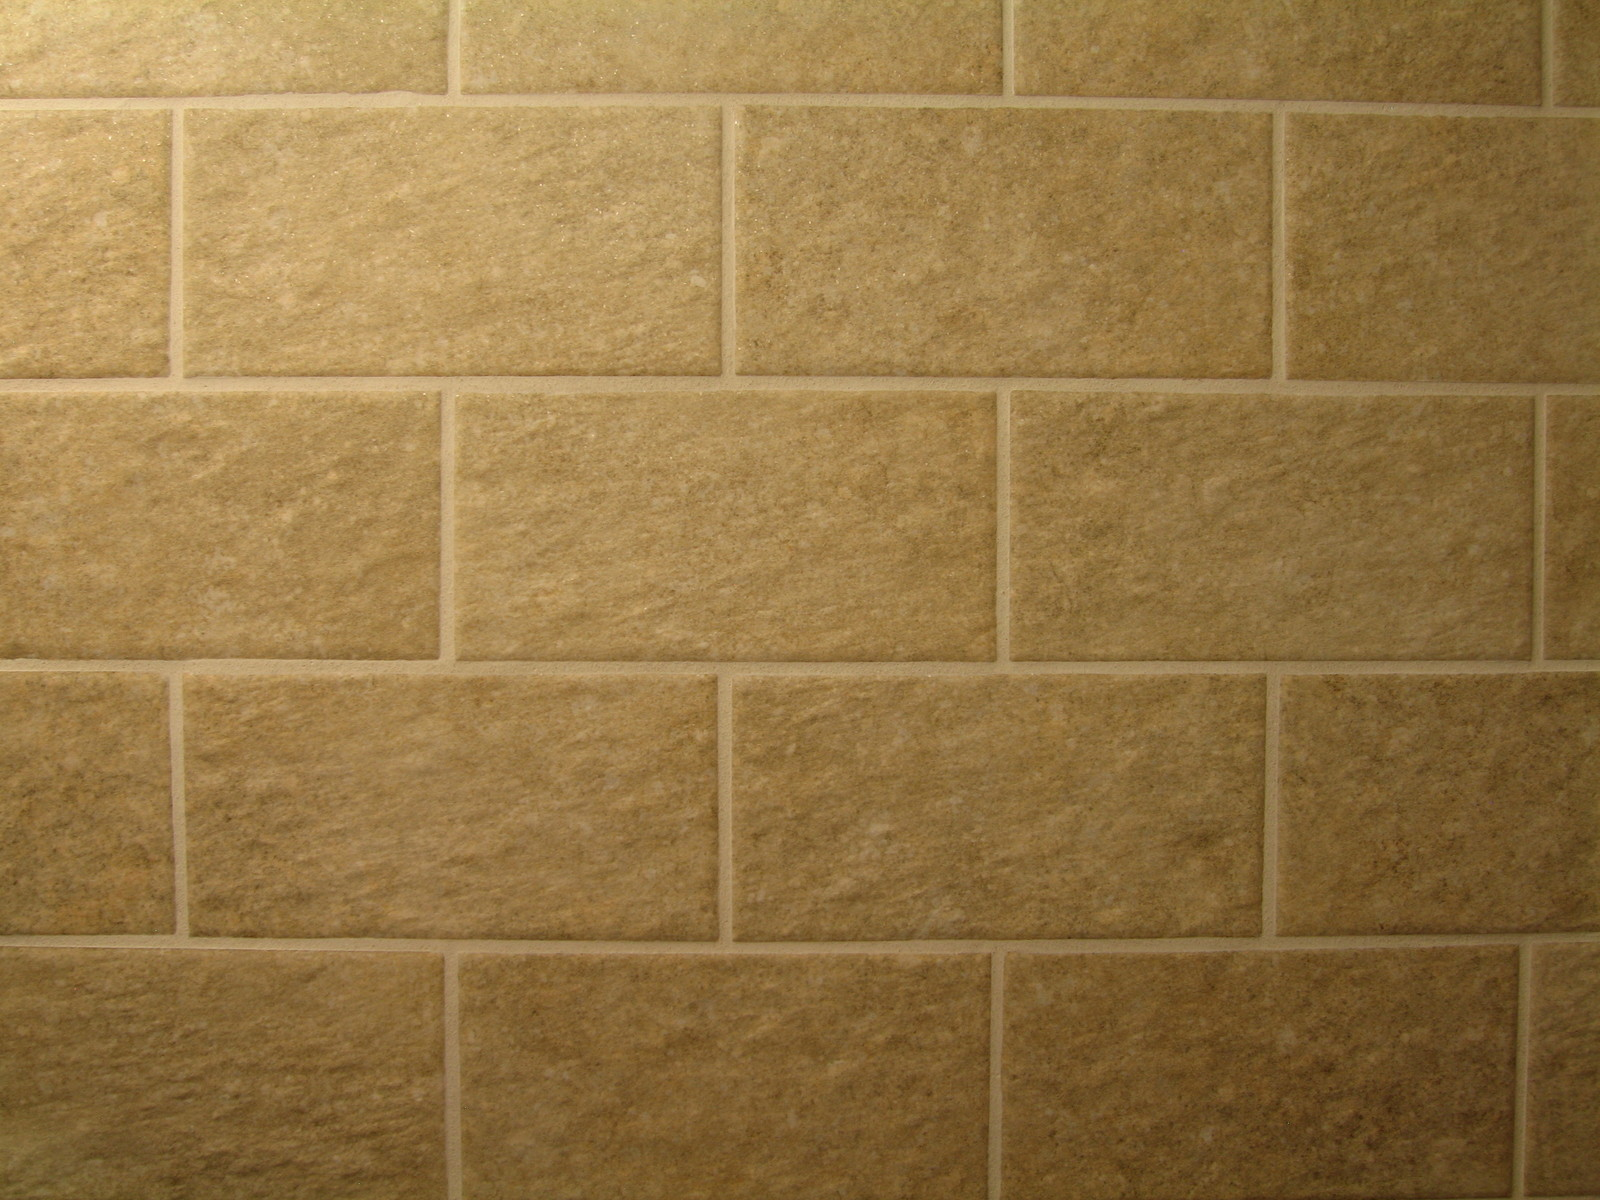 Grouting ceramic wall tile